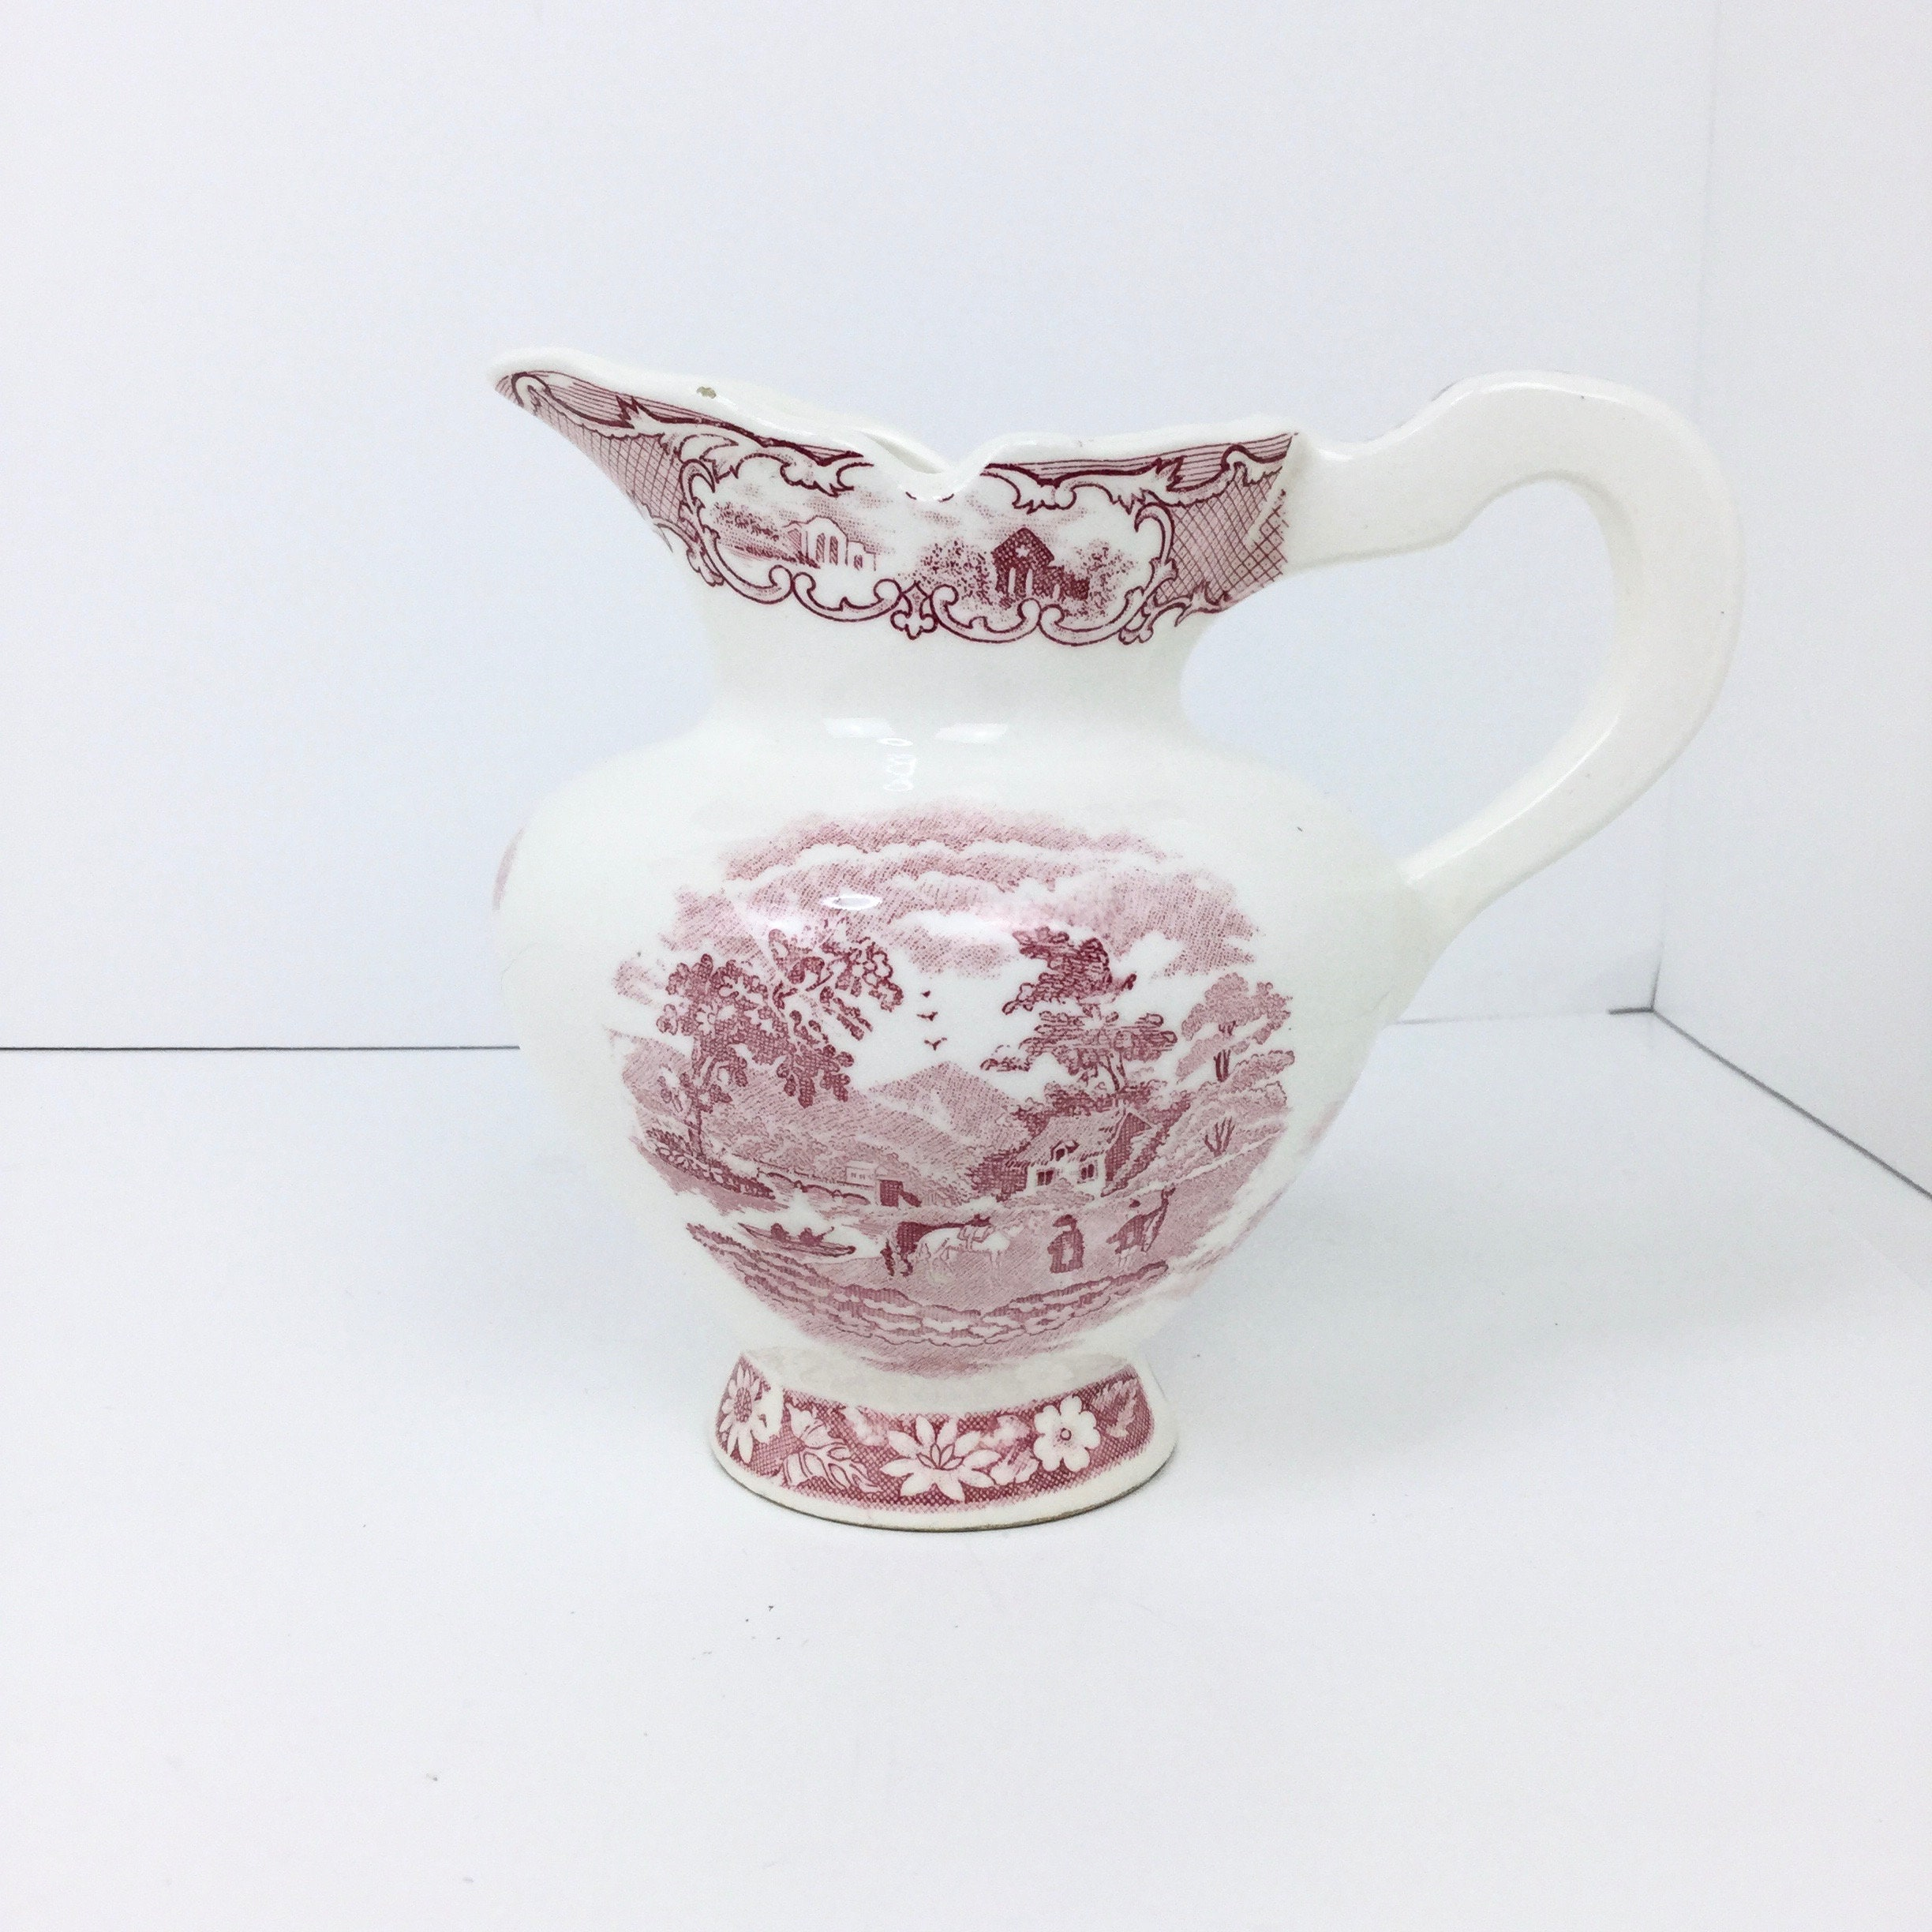 Incredible Vintage Red Toile Cream Pitcher Arco Dallas Fine China Mid Century White Country Farmhouse Christmas Decor Shabby Chic Gifts For Her Creamer Download Free Architecture Designs Rallybritishbridgeorg